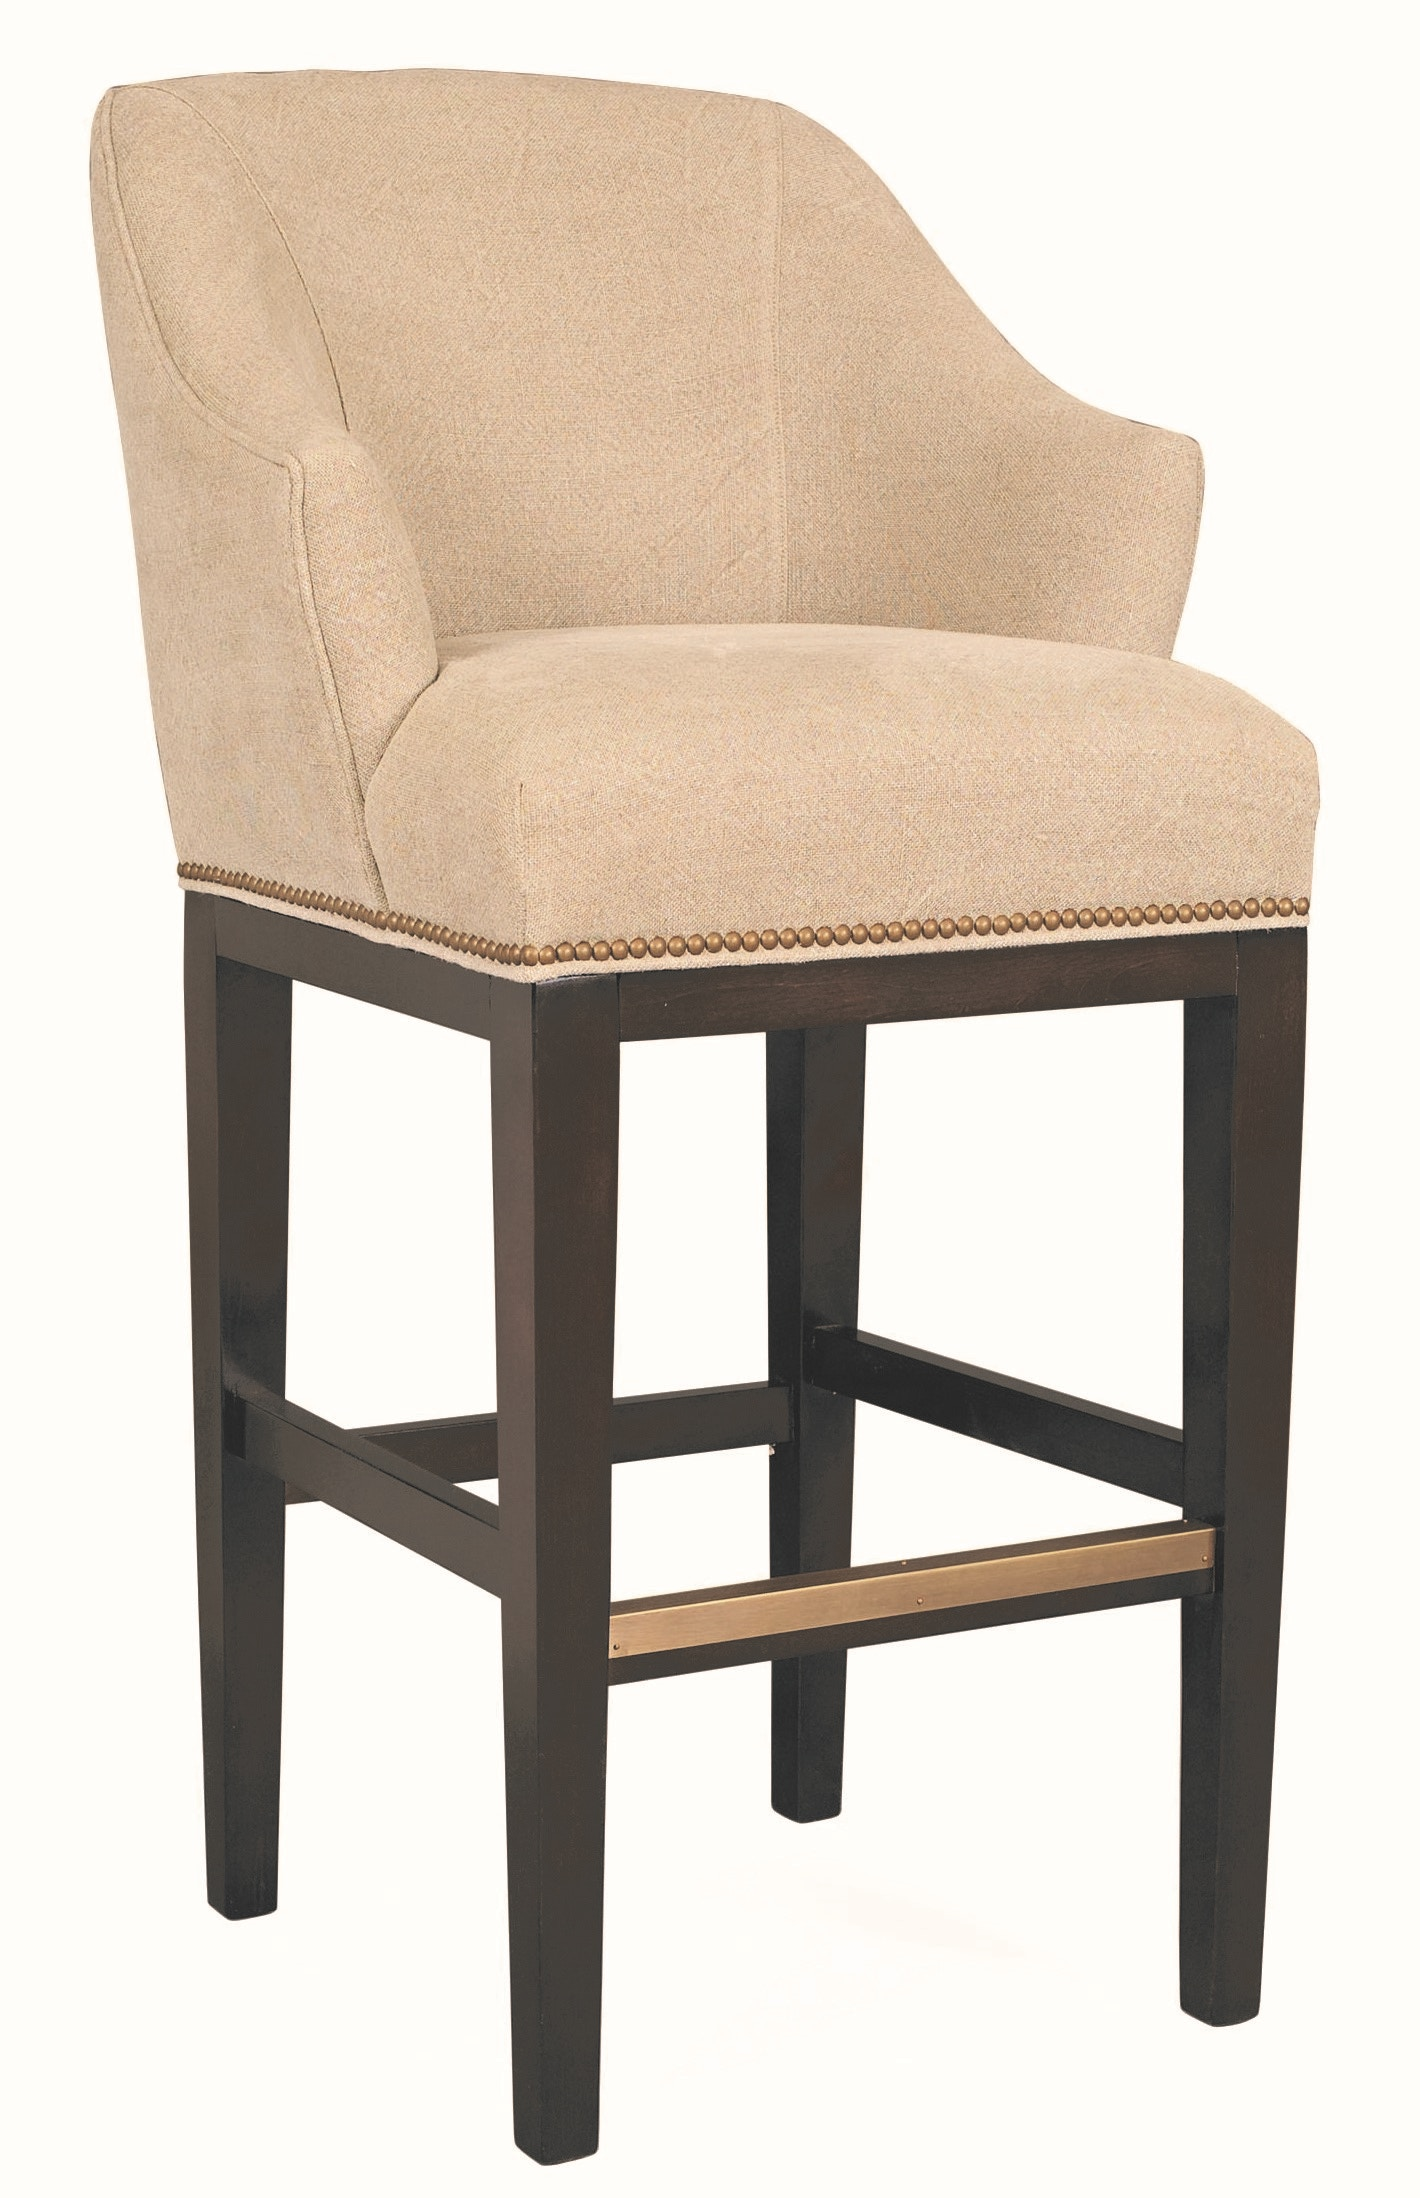 Lee Industries Bar And Game Room Bar Stool 5002 52